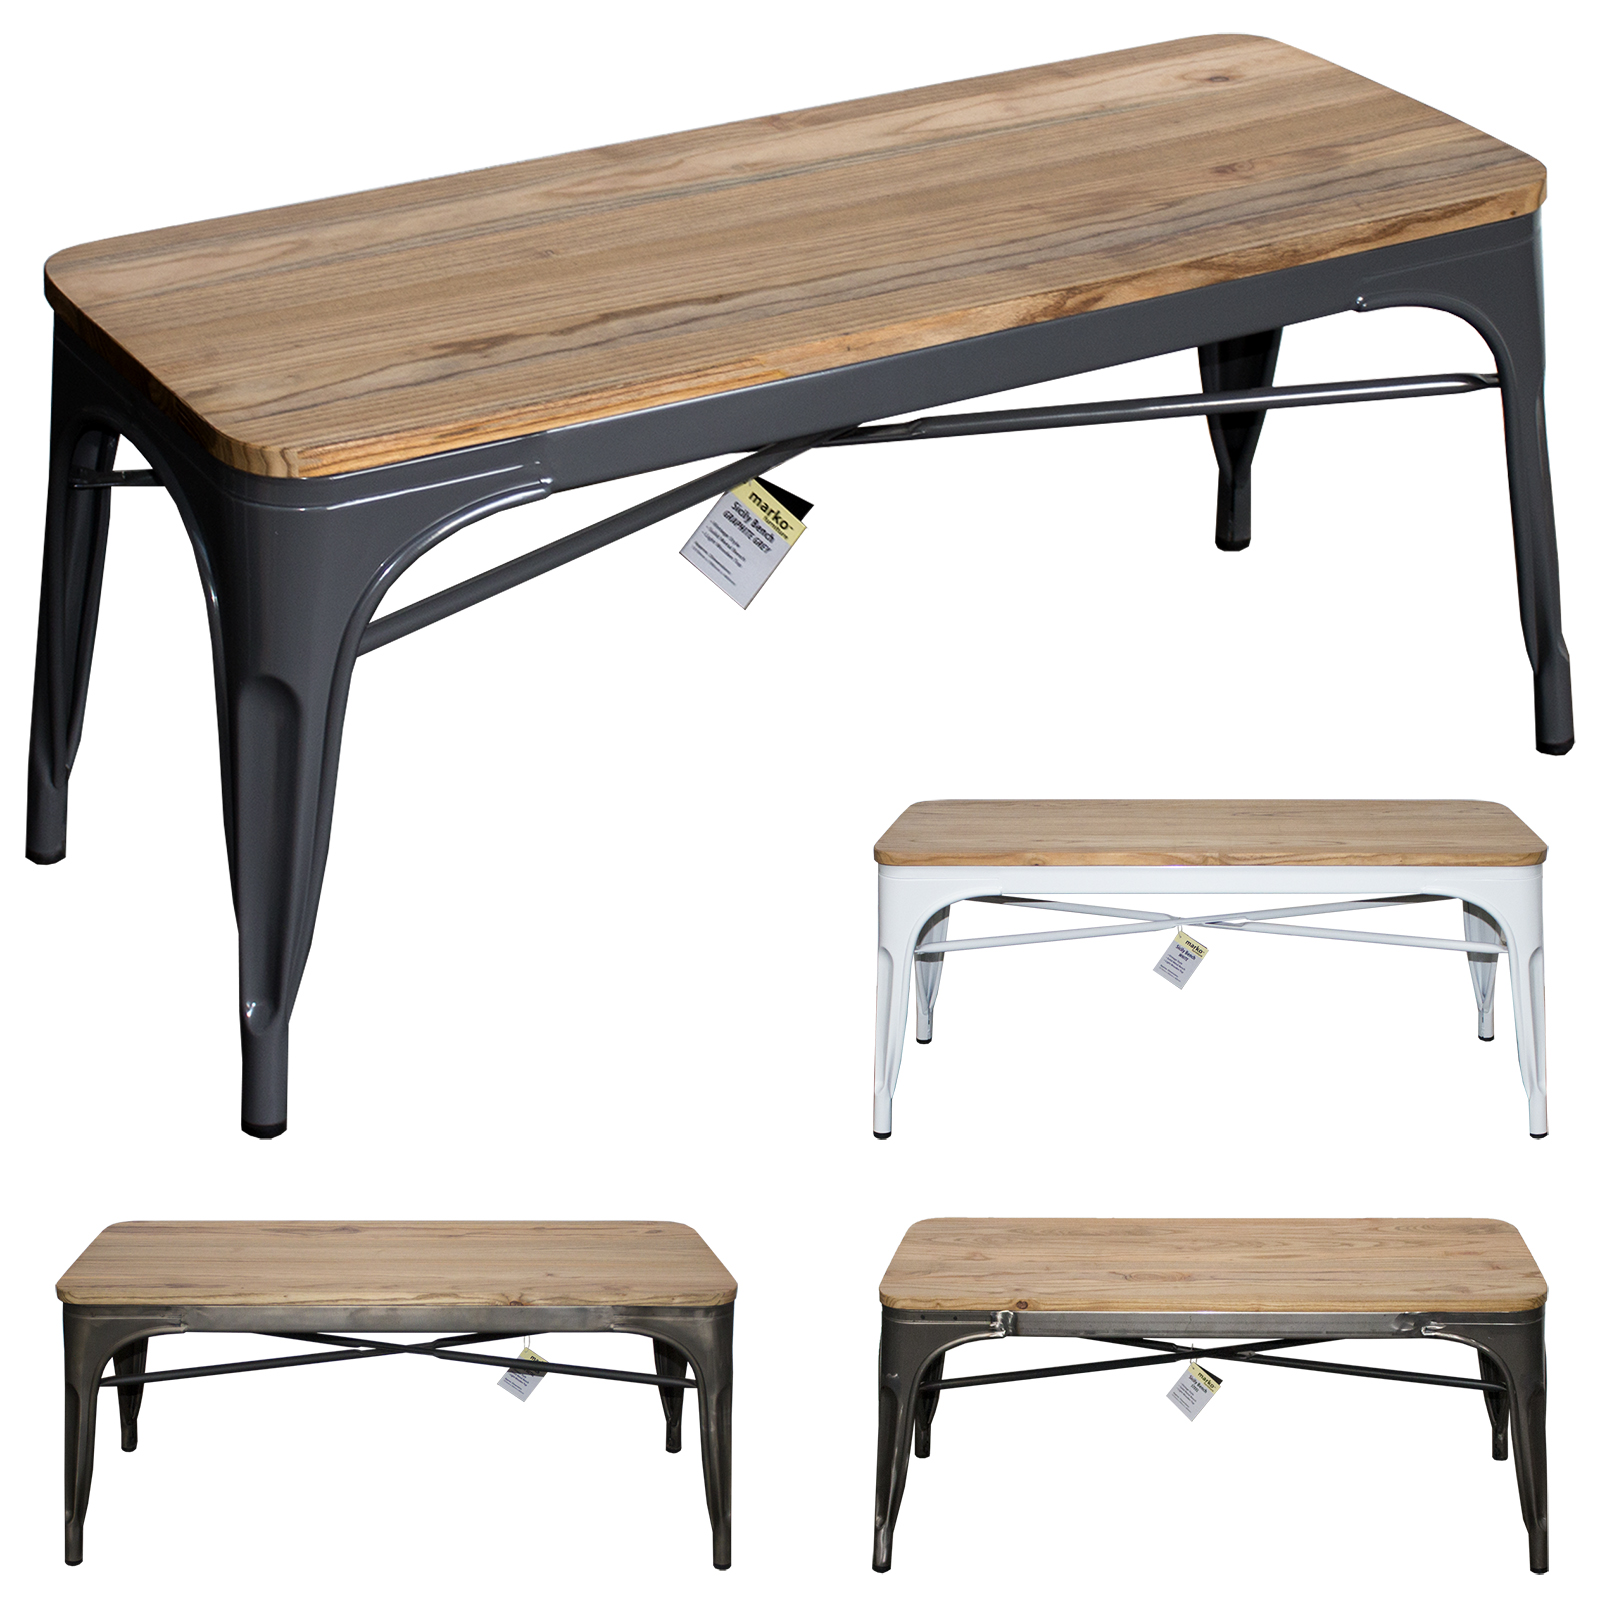 - INDUSTRIAL BENCH SEAT METAL RUSTIC VINTAGE FURNITURE TOLIX STYLE